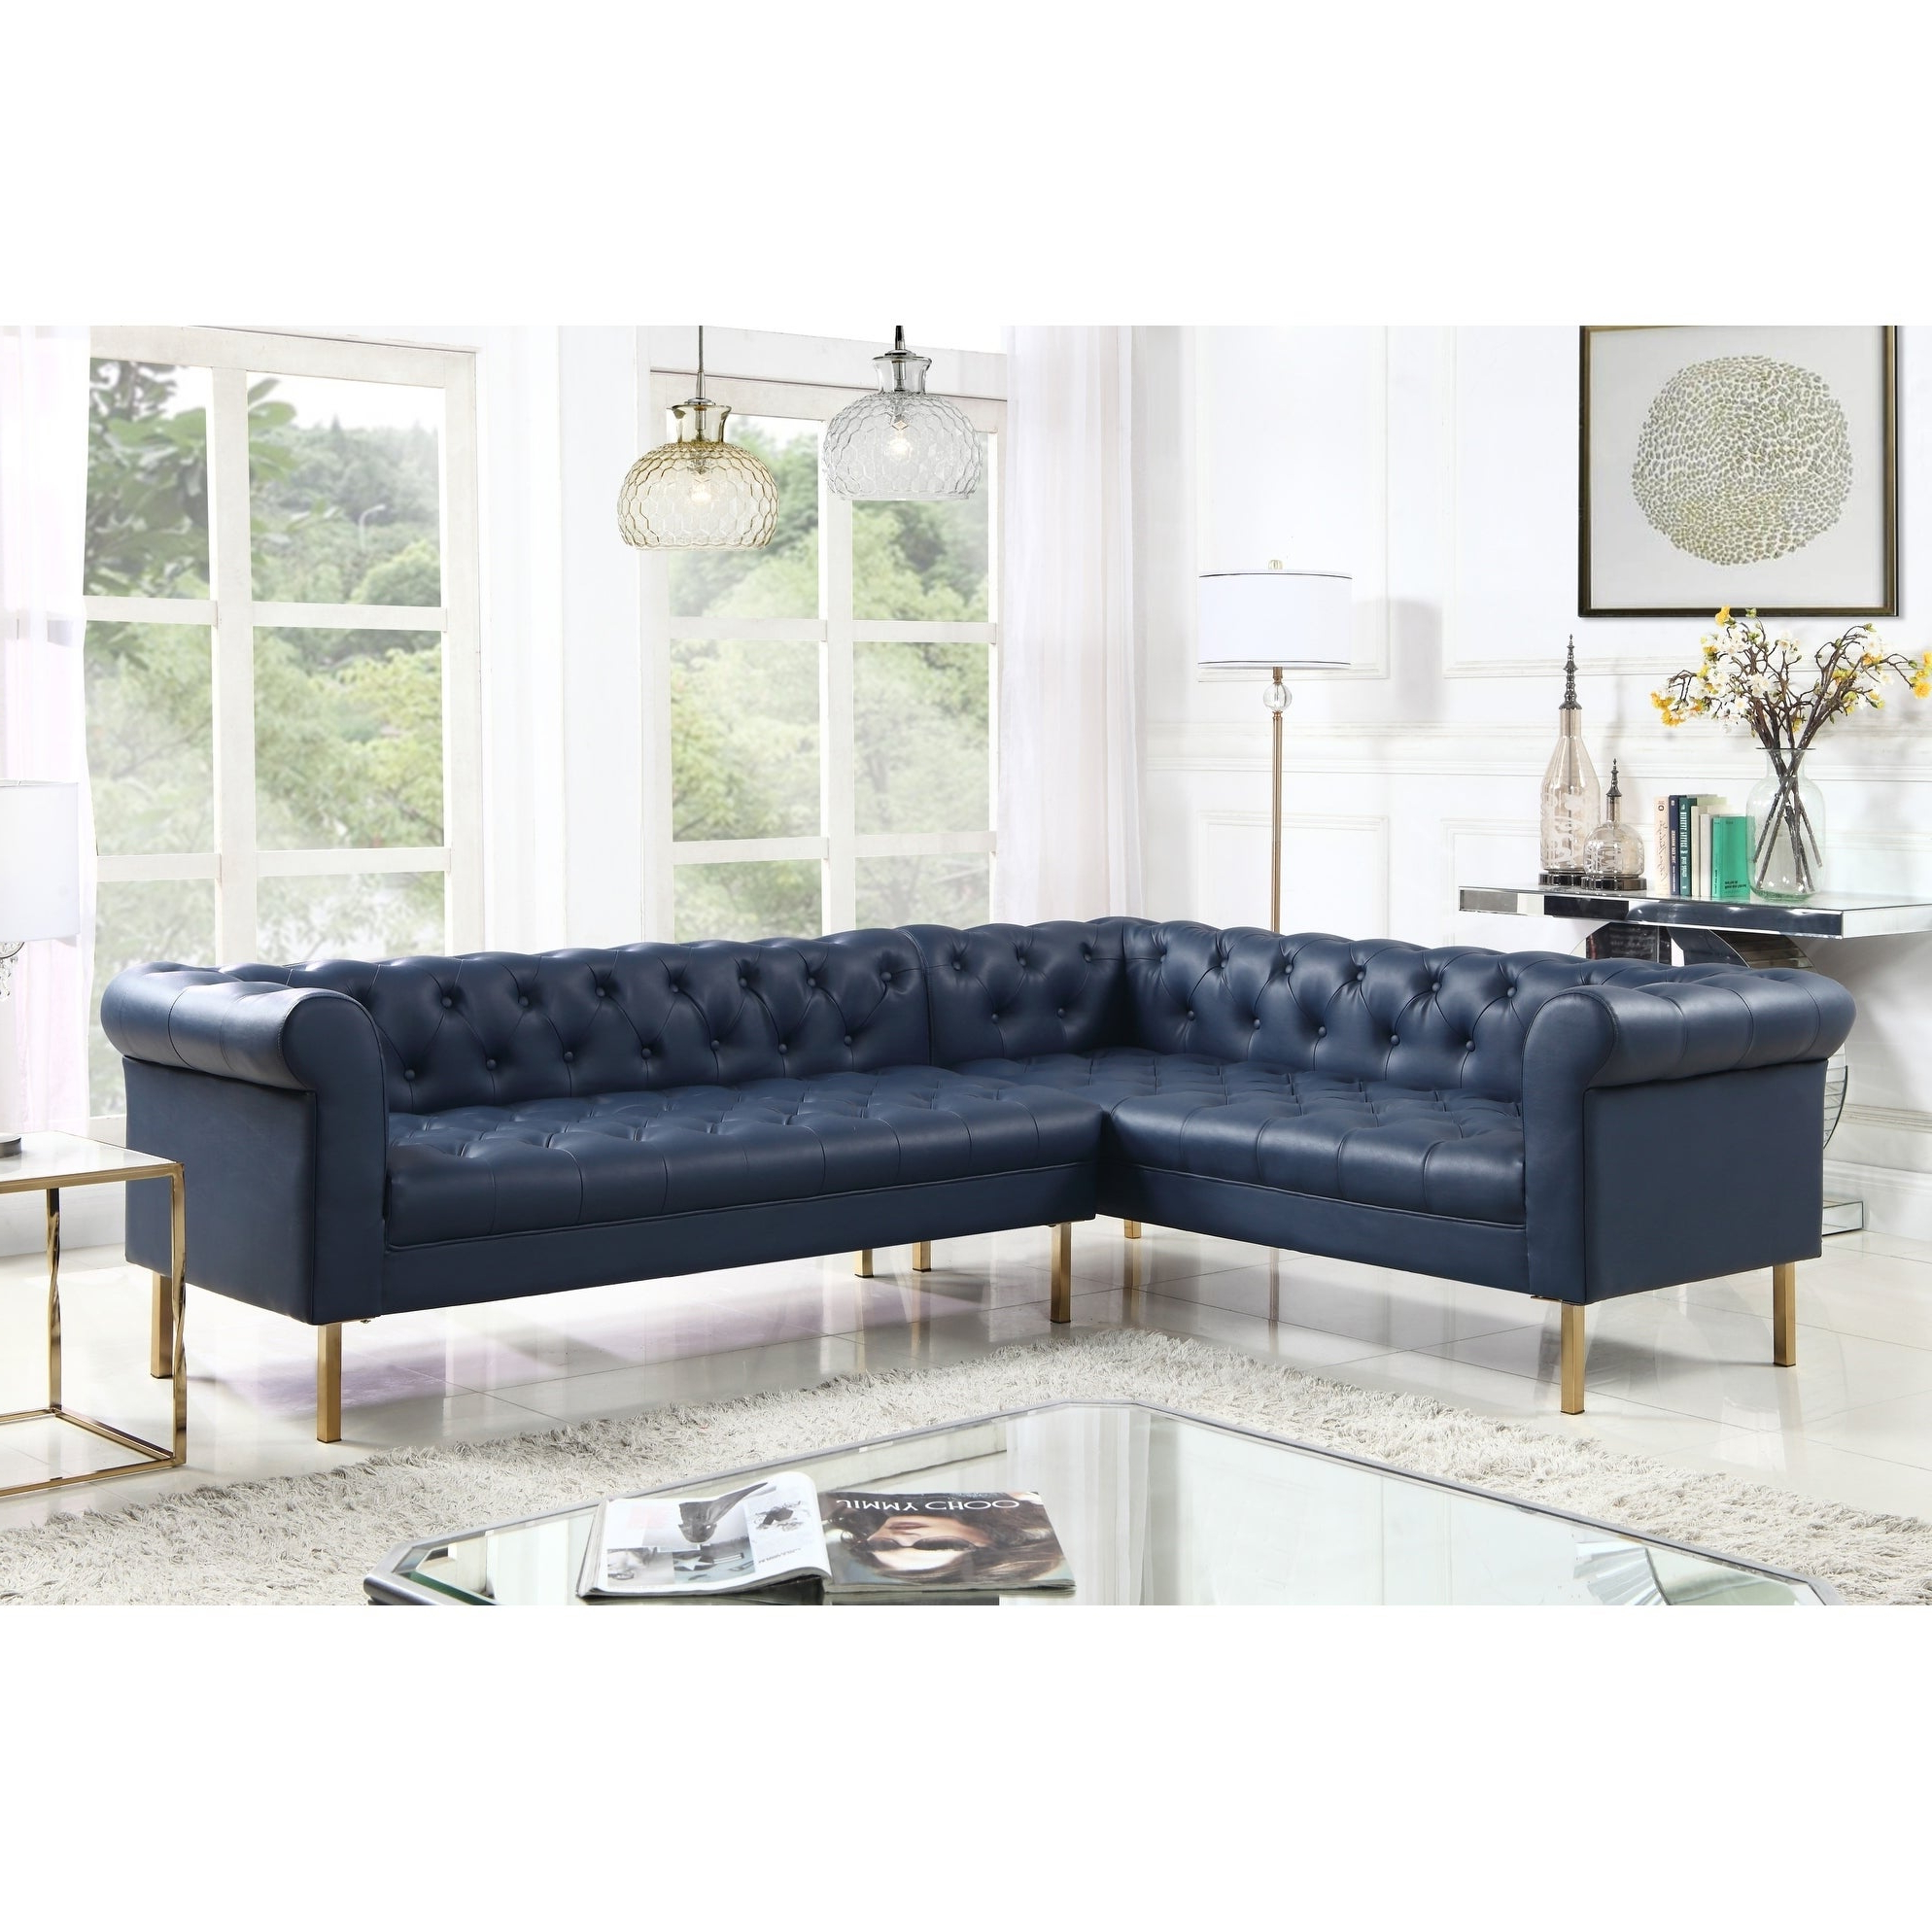 2019 Jimmie 3 Piece Sectionals Seating Group With Cushions Throughout Chic Home Julian Left Facing Sectional Sofa Pu Leather Upholstered (View 1 of 25)